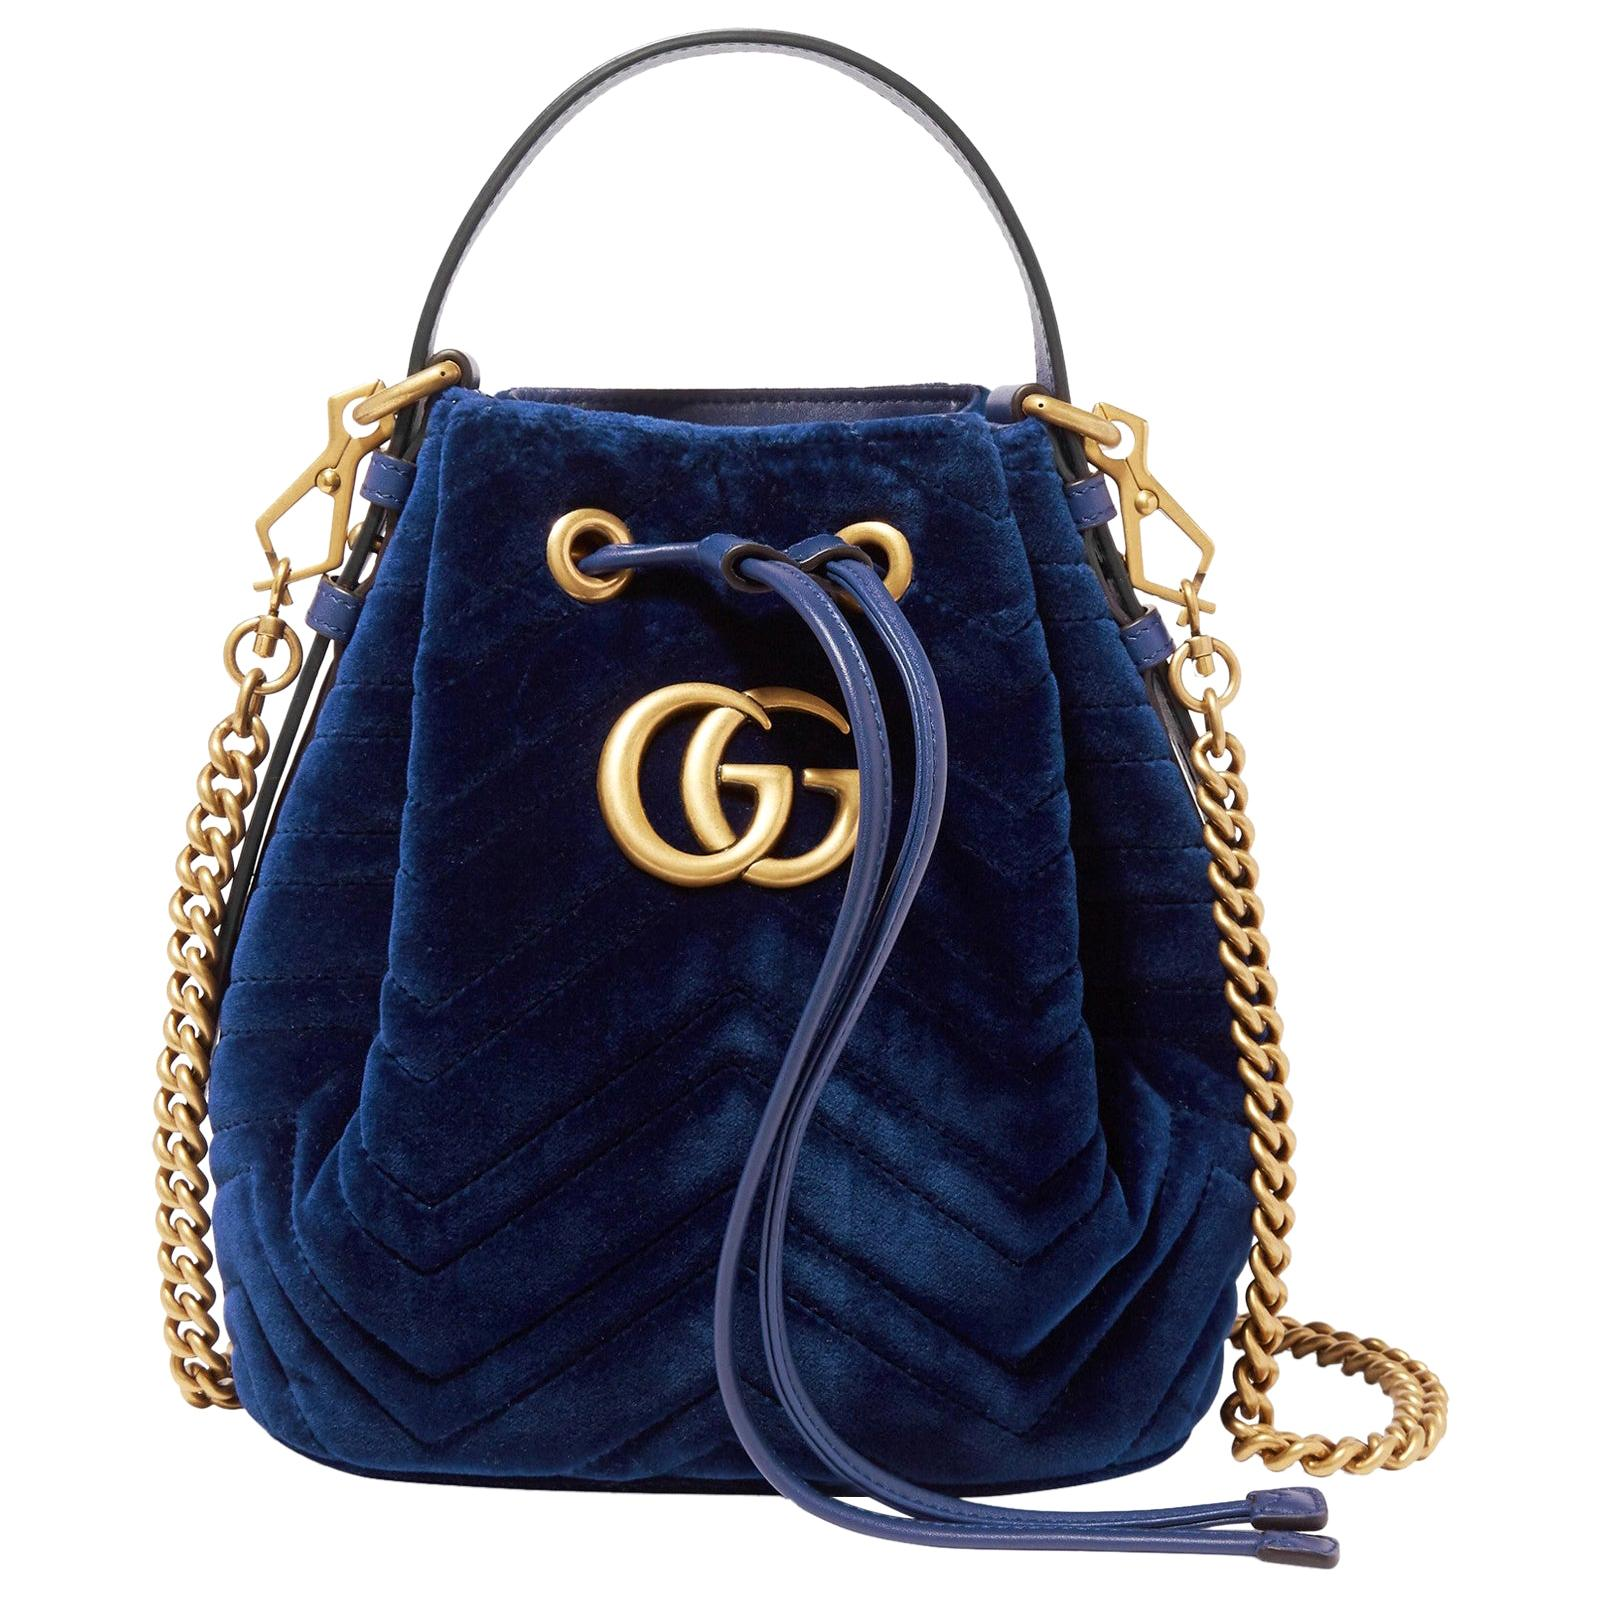 Gucci GG Marmont Leather-Trimmed Quilted-Velvet Bucket Bag